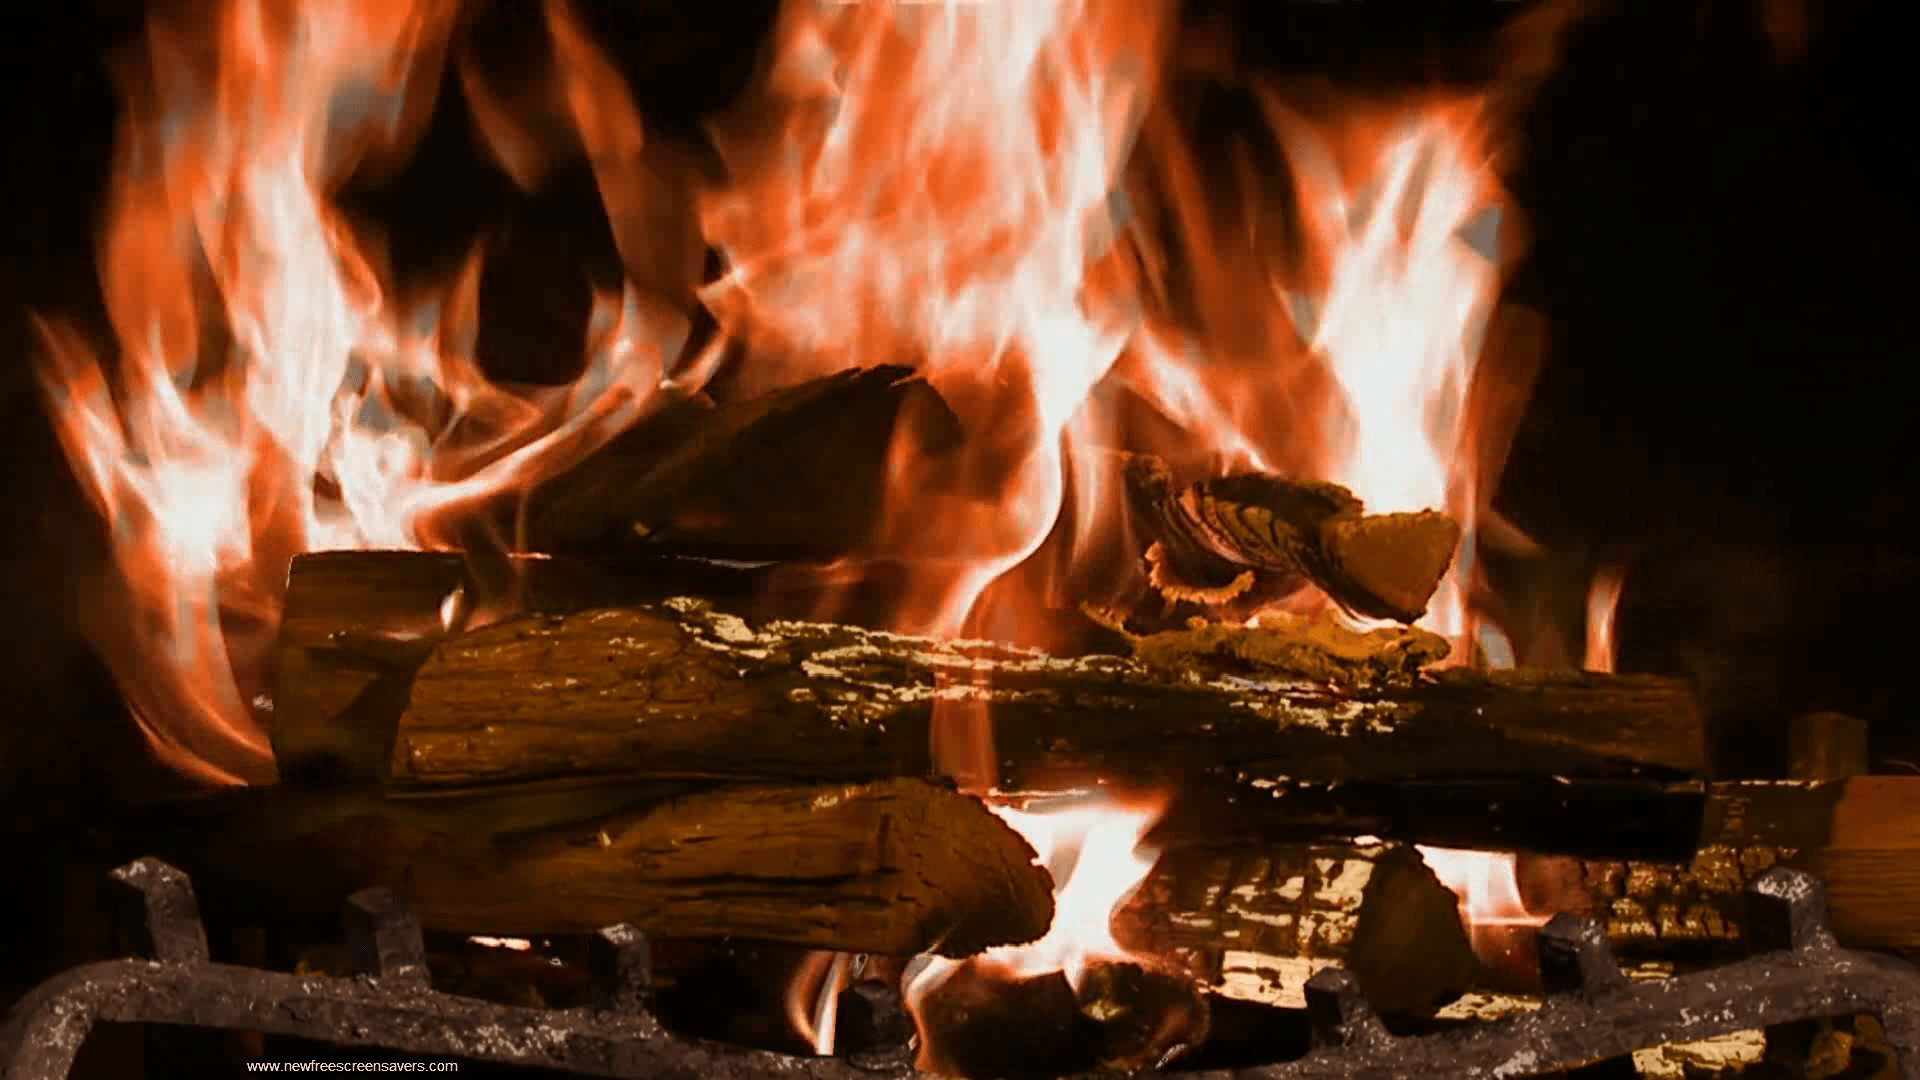 Free Christmas Fireplace Screensaver  Fireplace Wallpaper 57 images